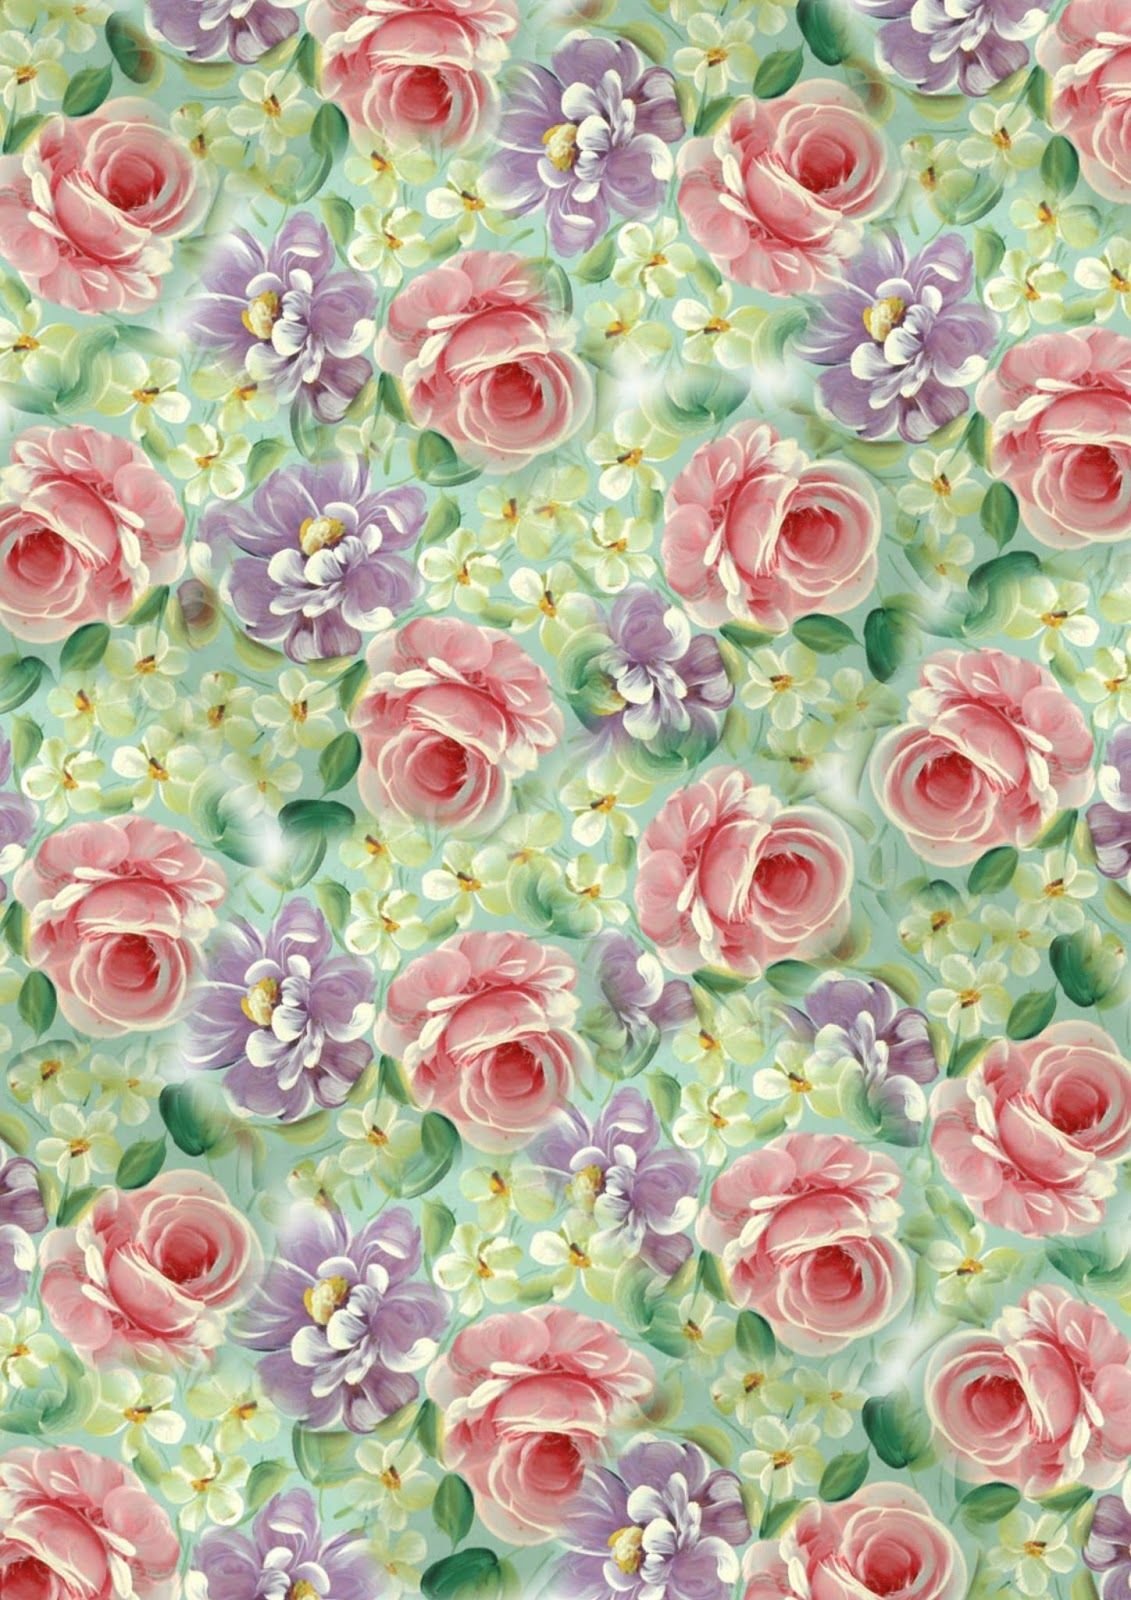 simply crafts new roses amp daisies vintage